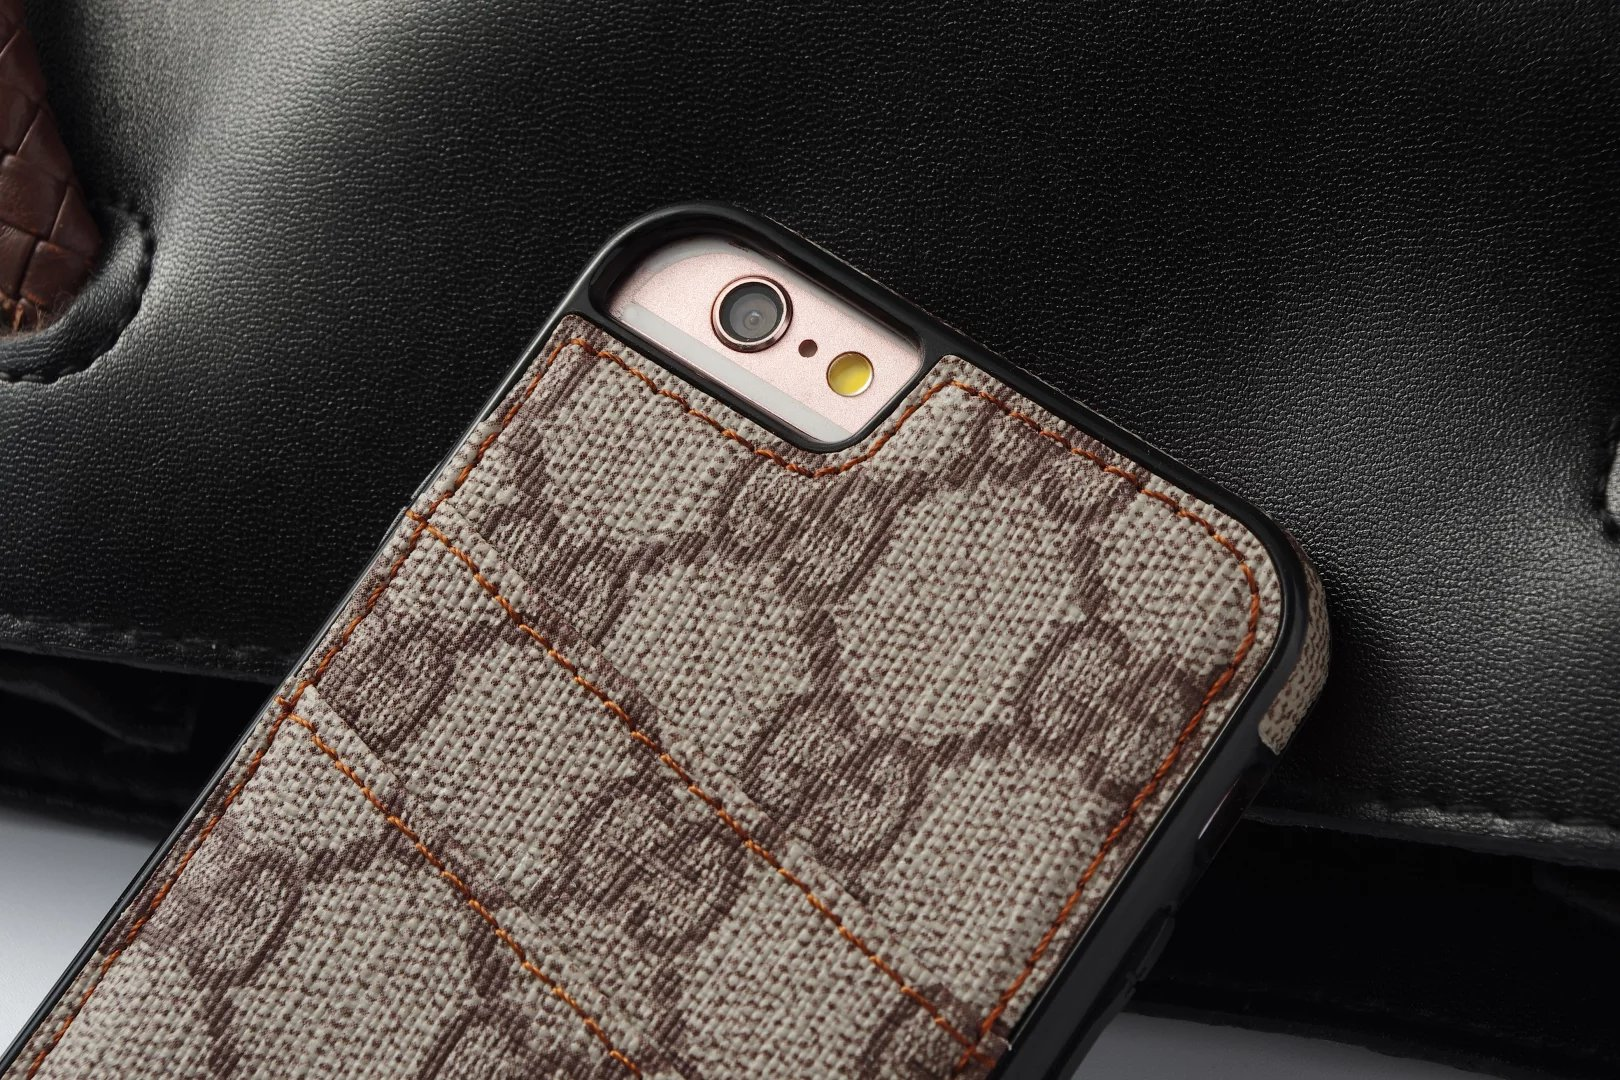 phone cases iphone 6s Plus best iphone 6s Plus cases fashion iphone6s plus case tory burch ipad 2 case mophie juicepack protective case iphone 6s phone covers for iphone iphone 6s top cases buy iphone 6s covers